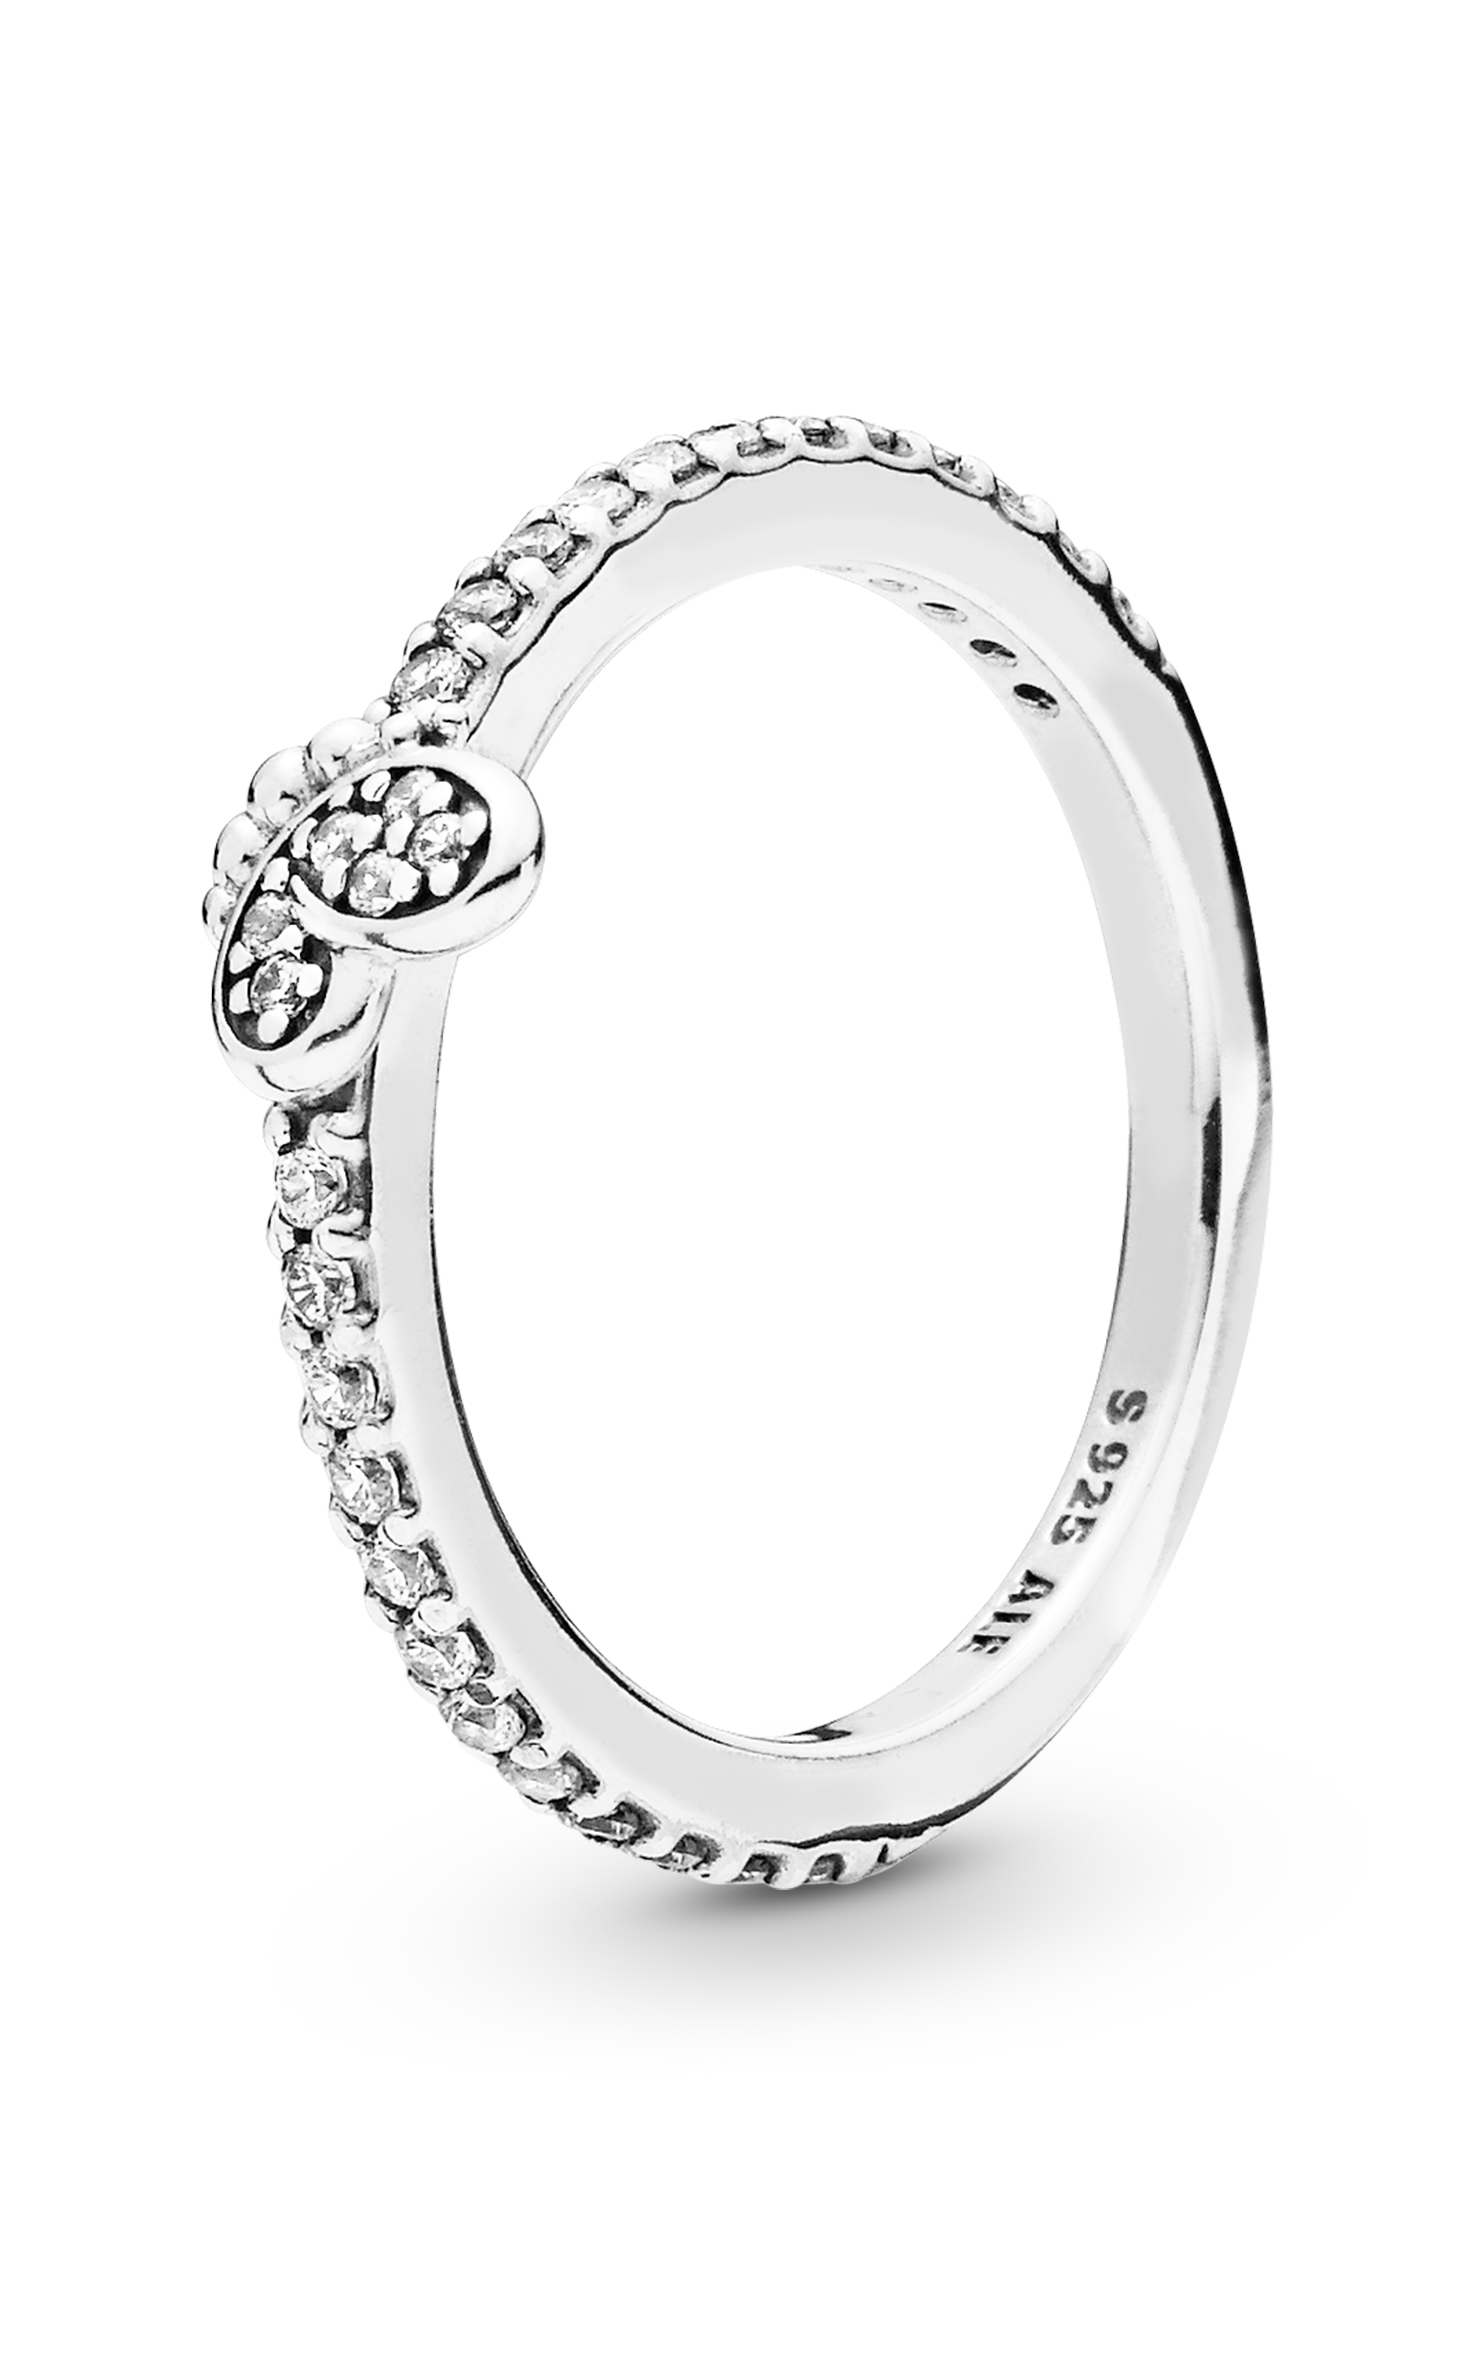 Pandora Bedazzling Butterfly Ring Clear Cz 197948Cz 48 Throughout Most Recent Shimmering Zigzag Rings (Gallery 23 of 25)